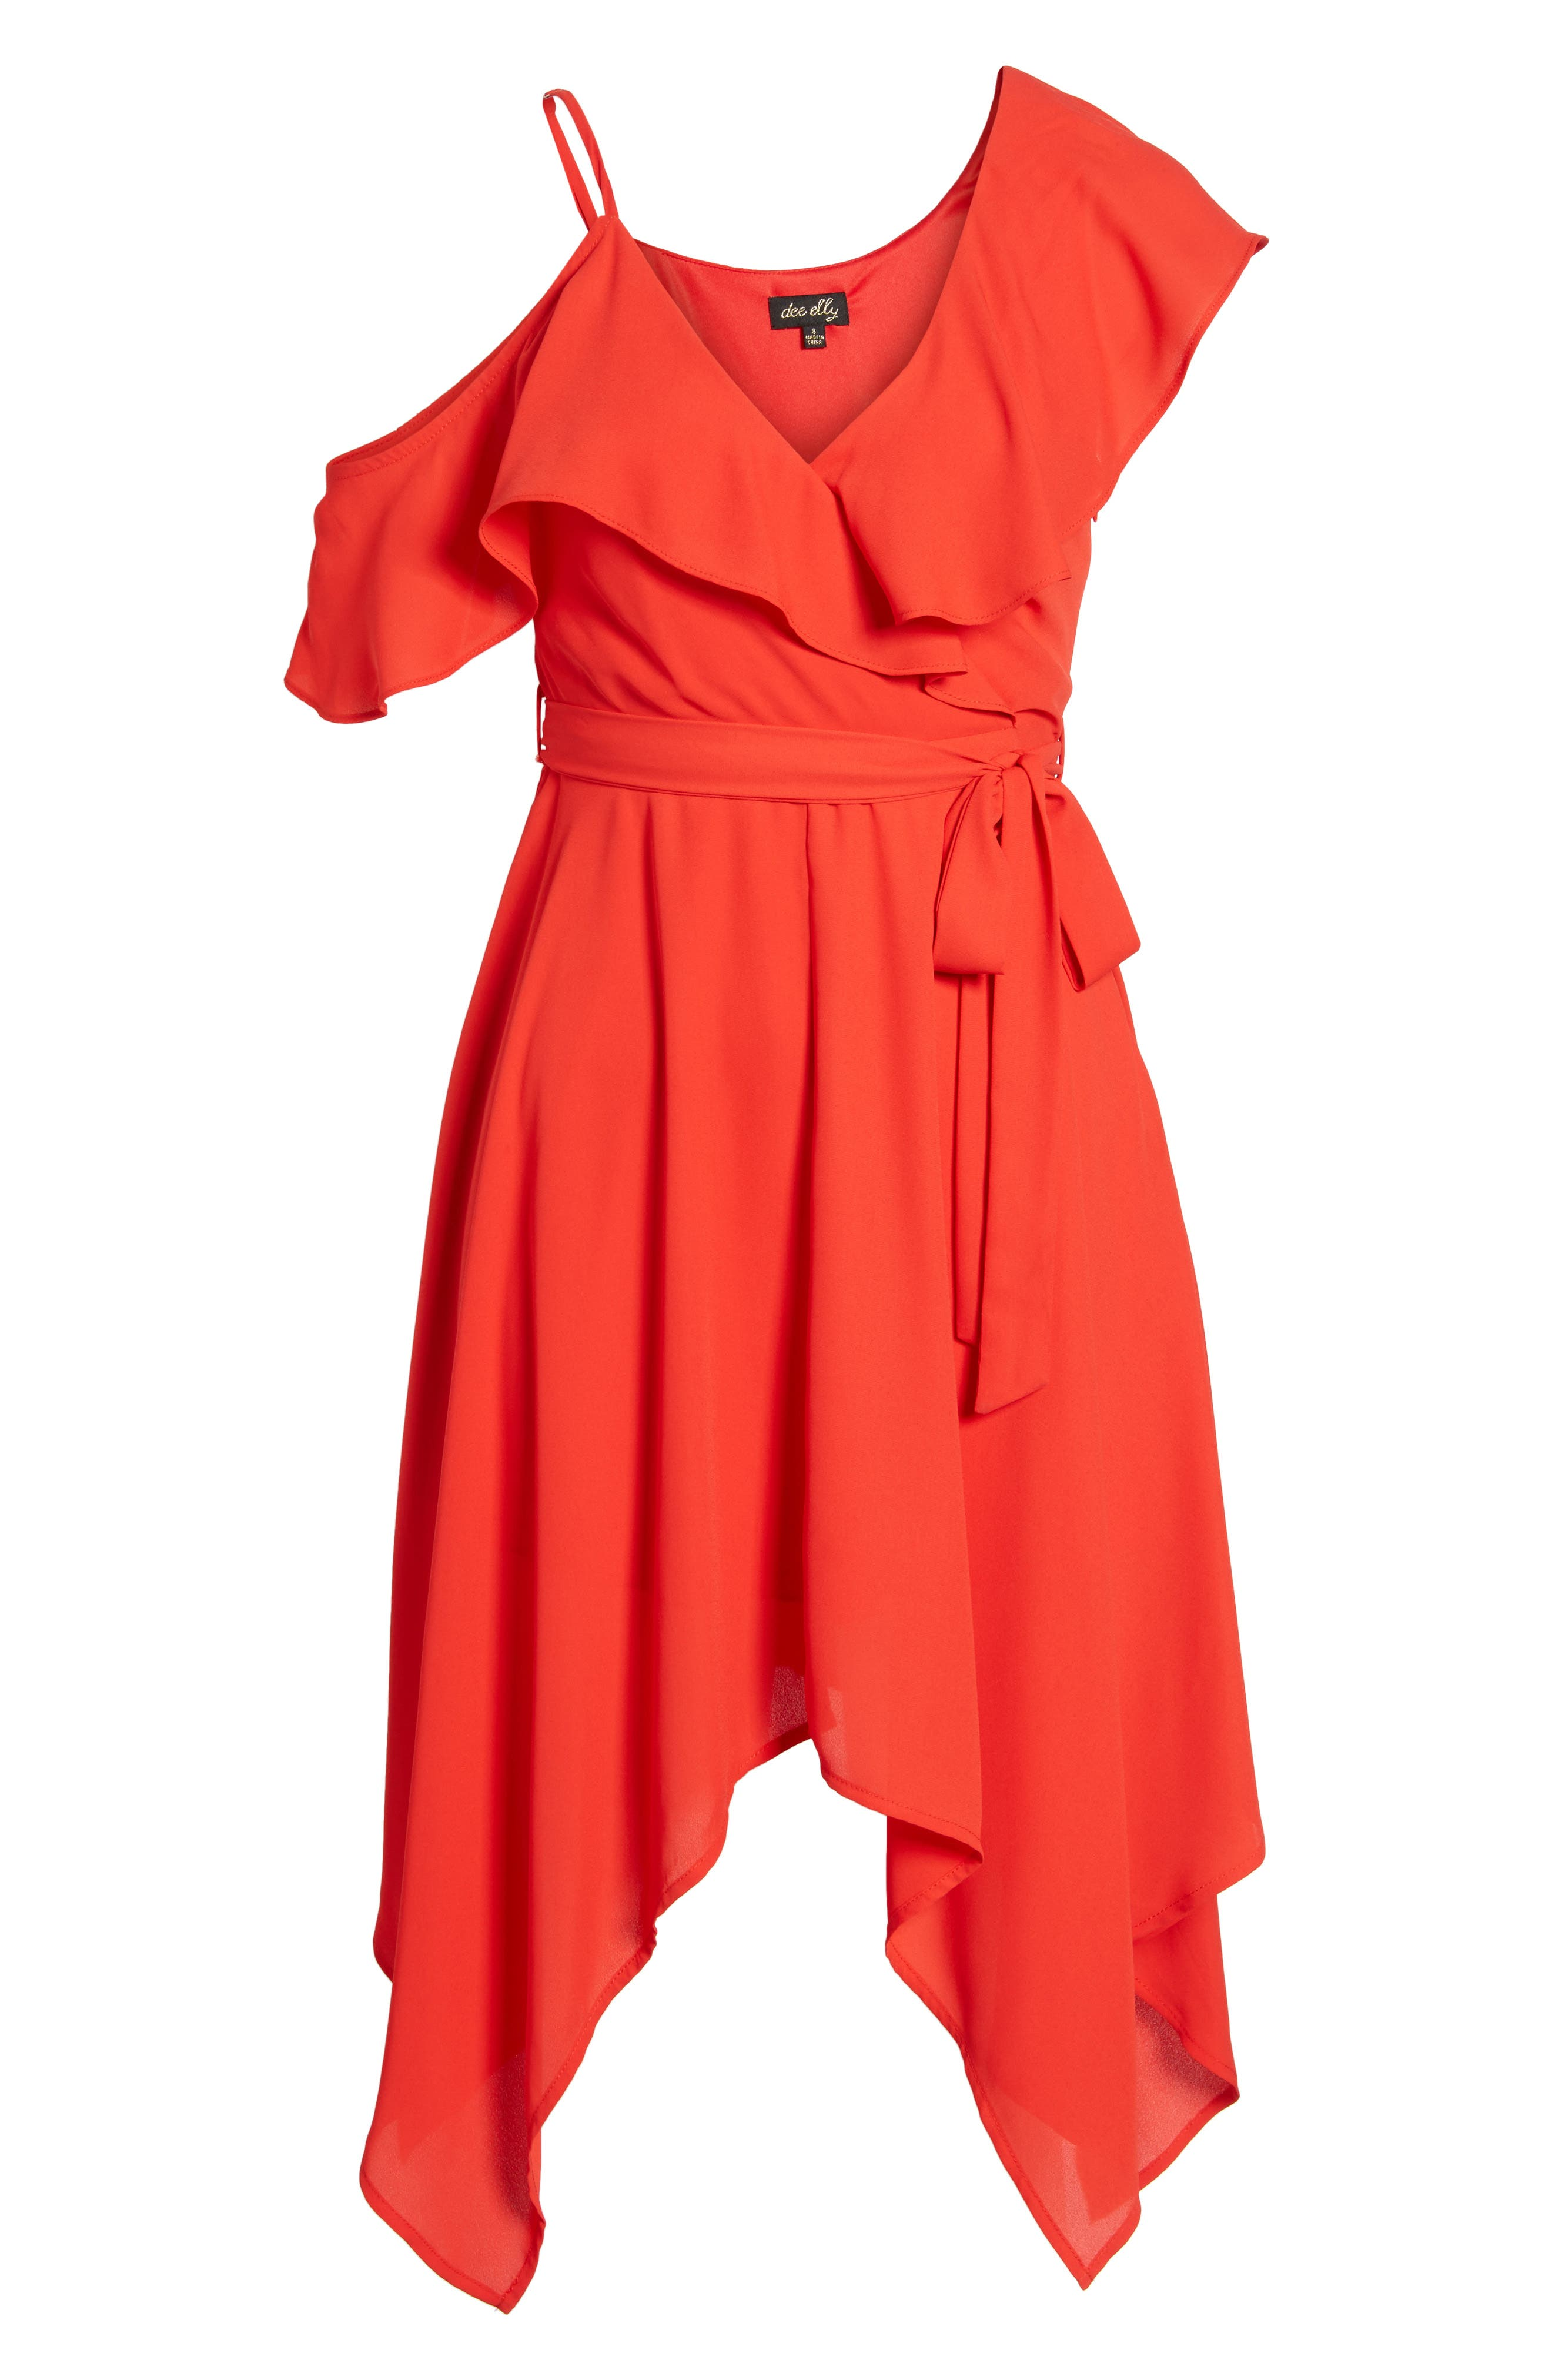 Asymmetrical Ruffle Dress,                             Alternate thumbnail 6, color,                             620